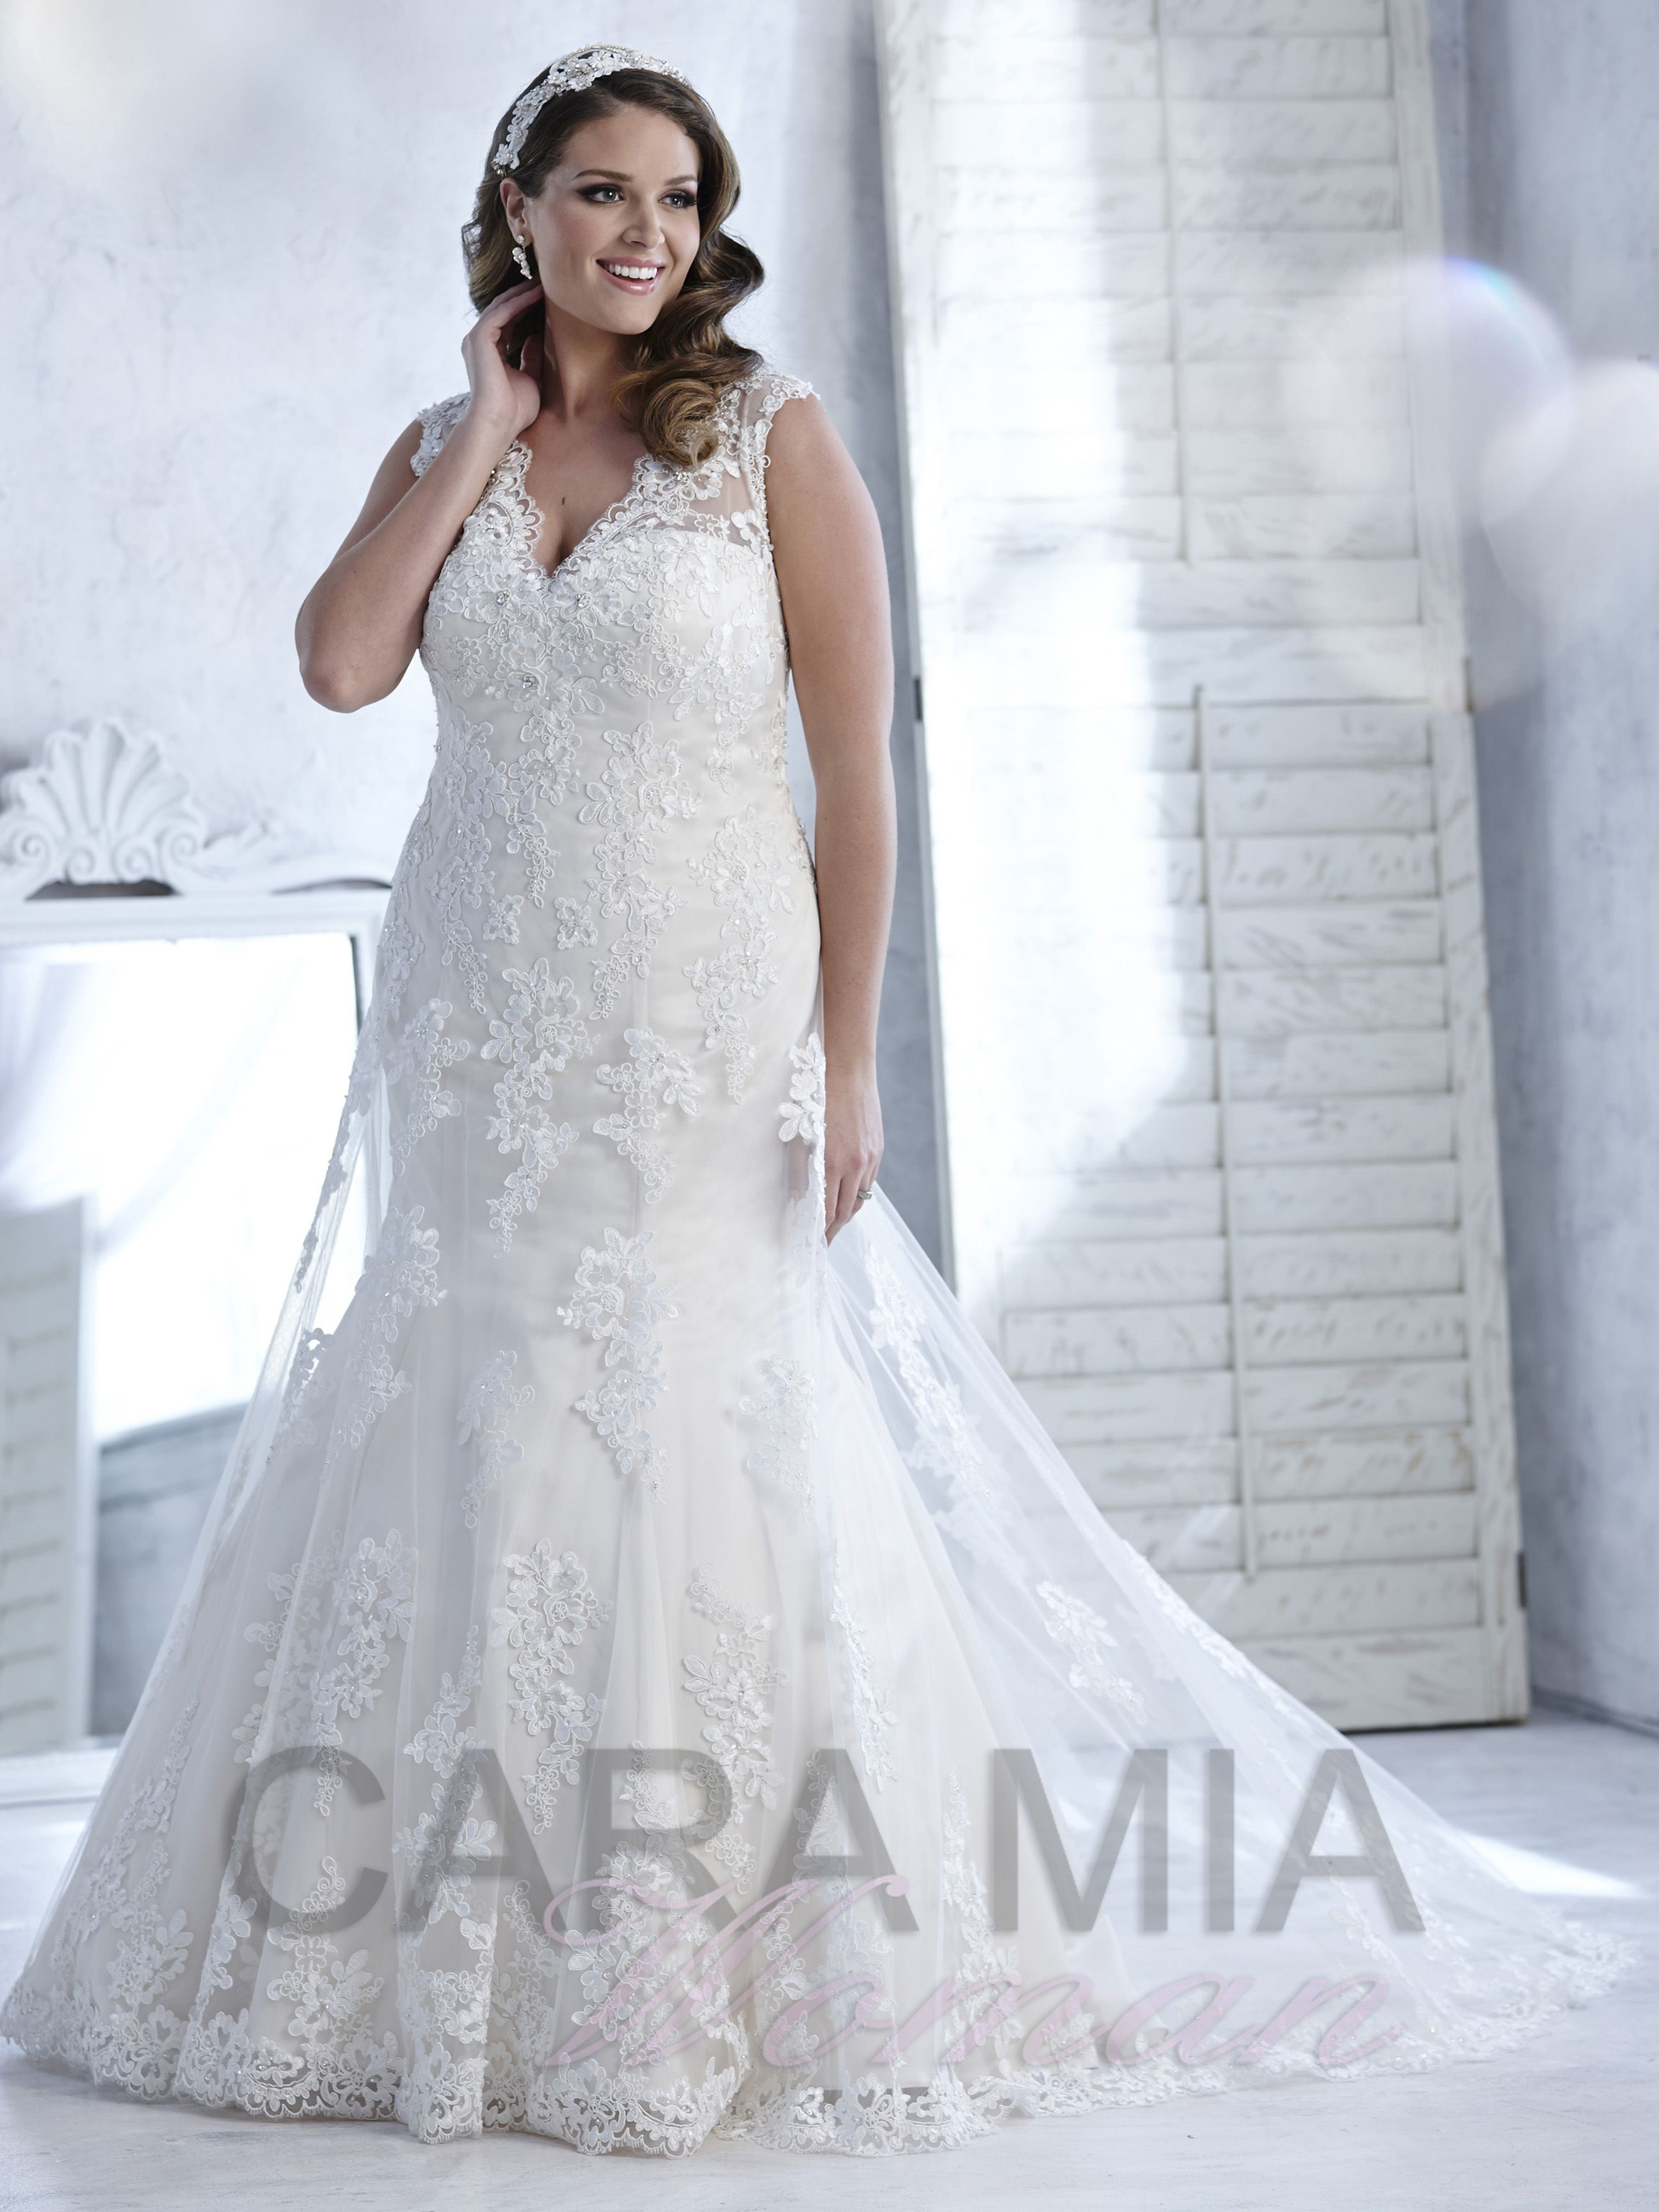 This lace mermaid Cara Mia bridal gown is a SIZE  in Ivory  OUR